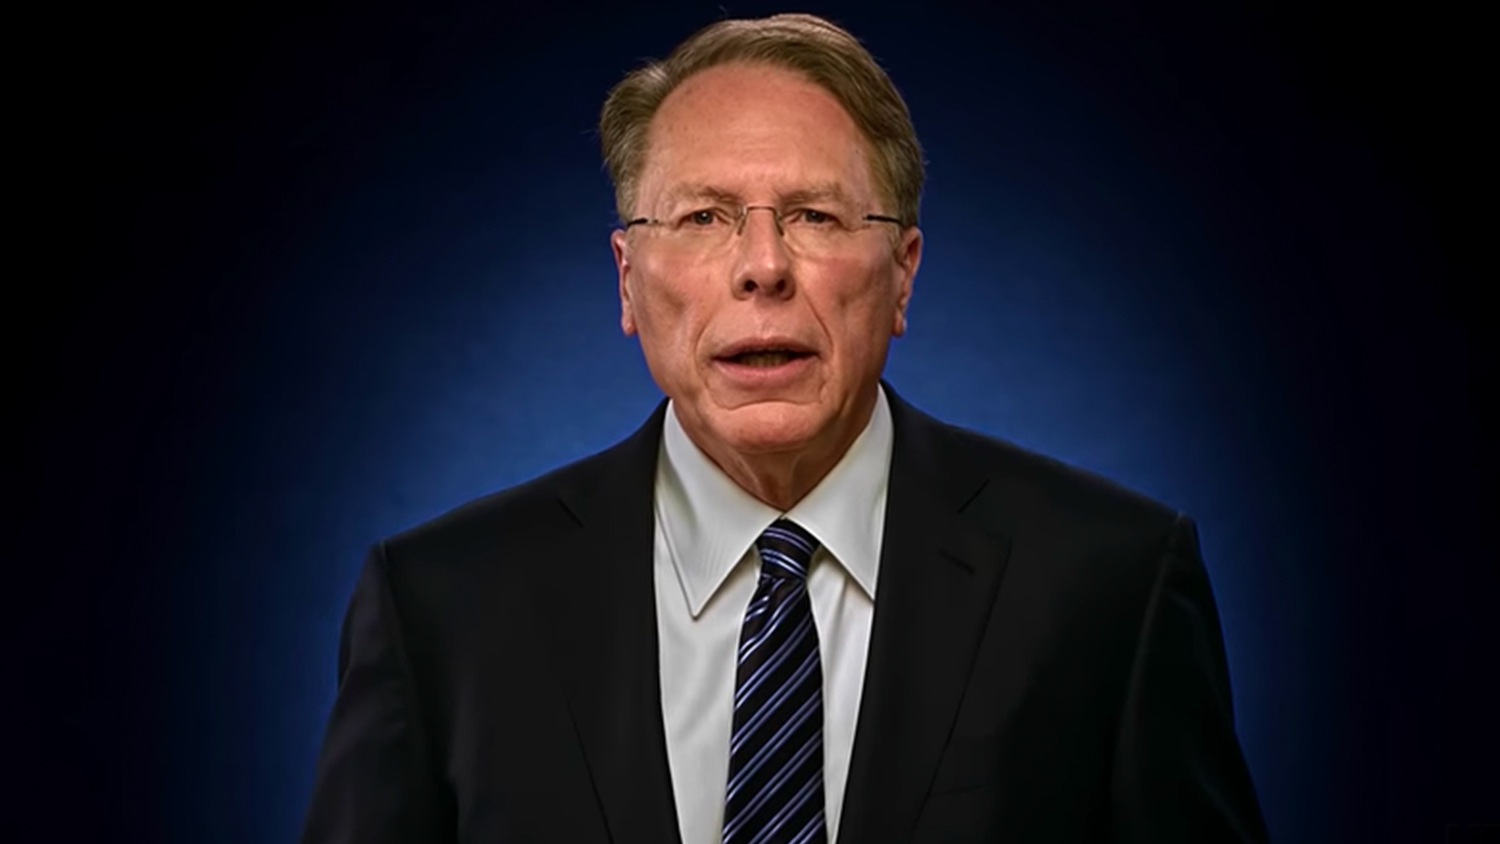 Wayne LaPierre | An Urgent Message to the NRA's 5 Million Members